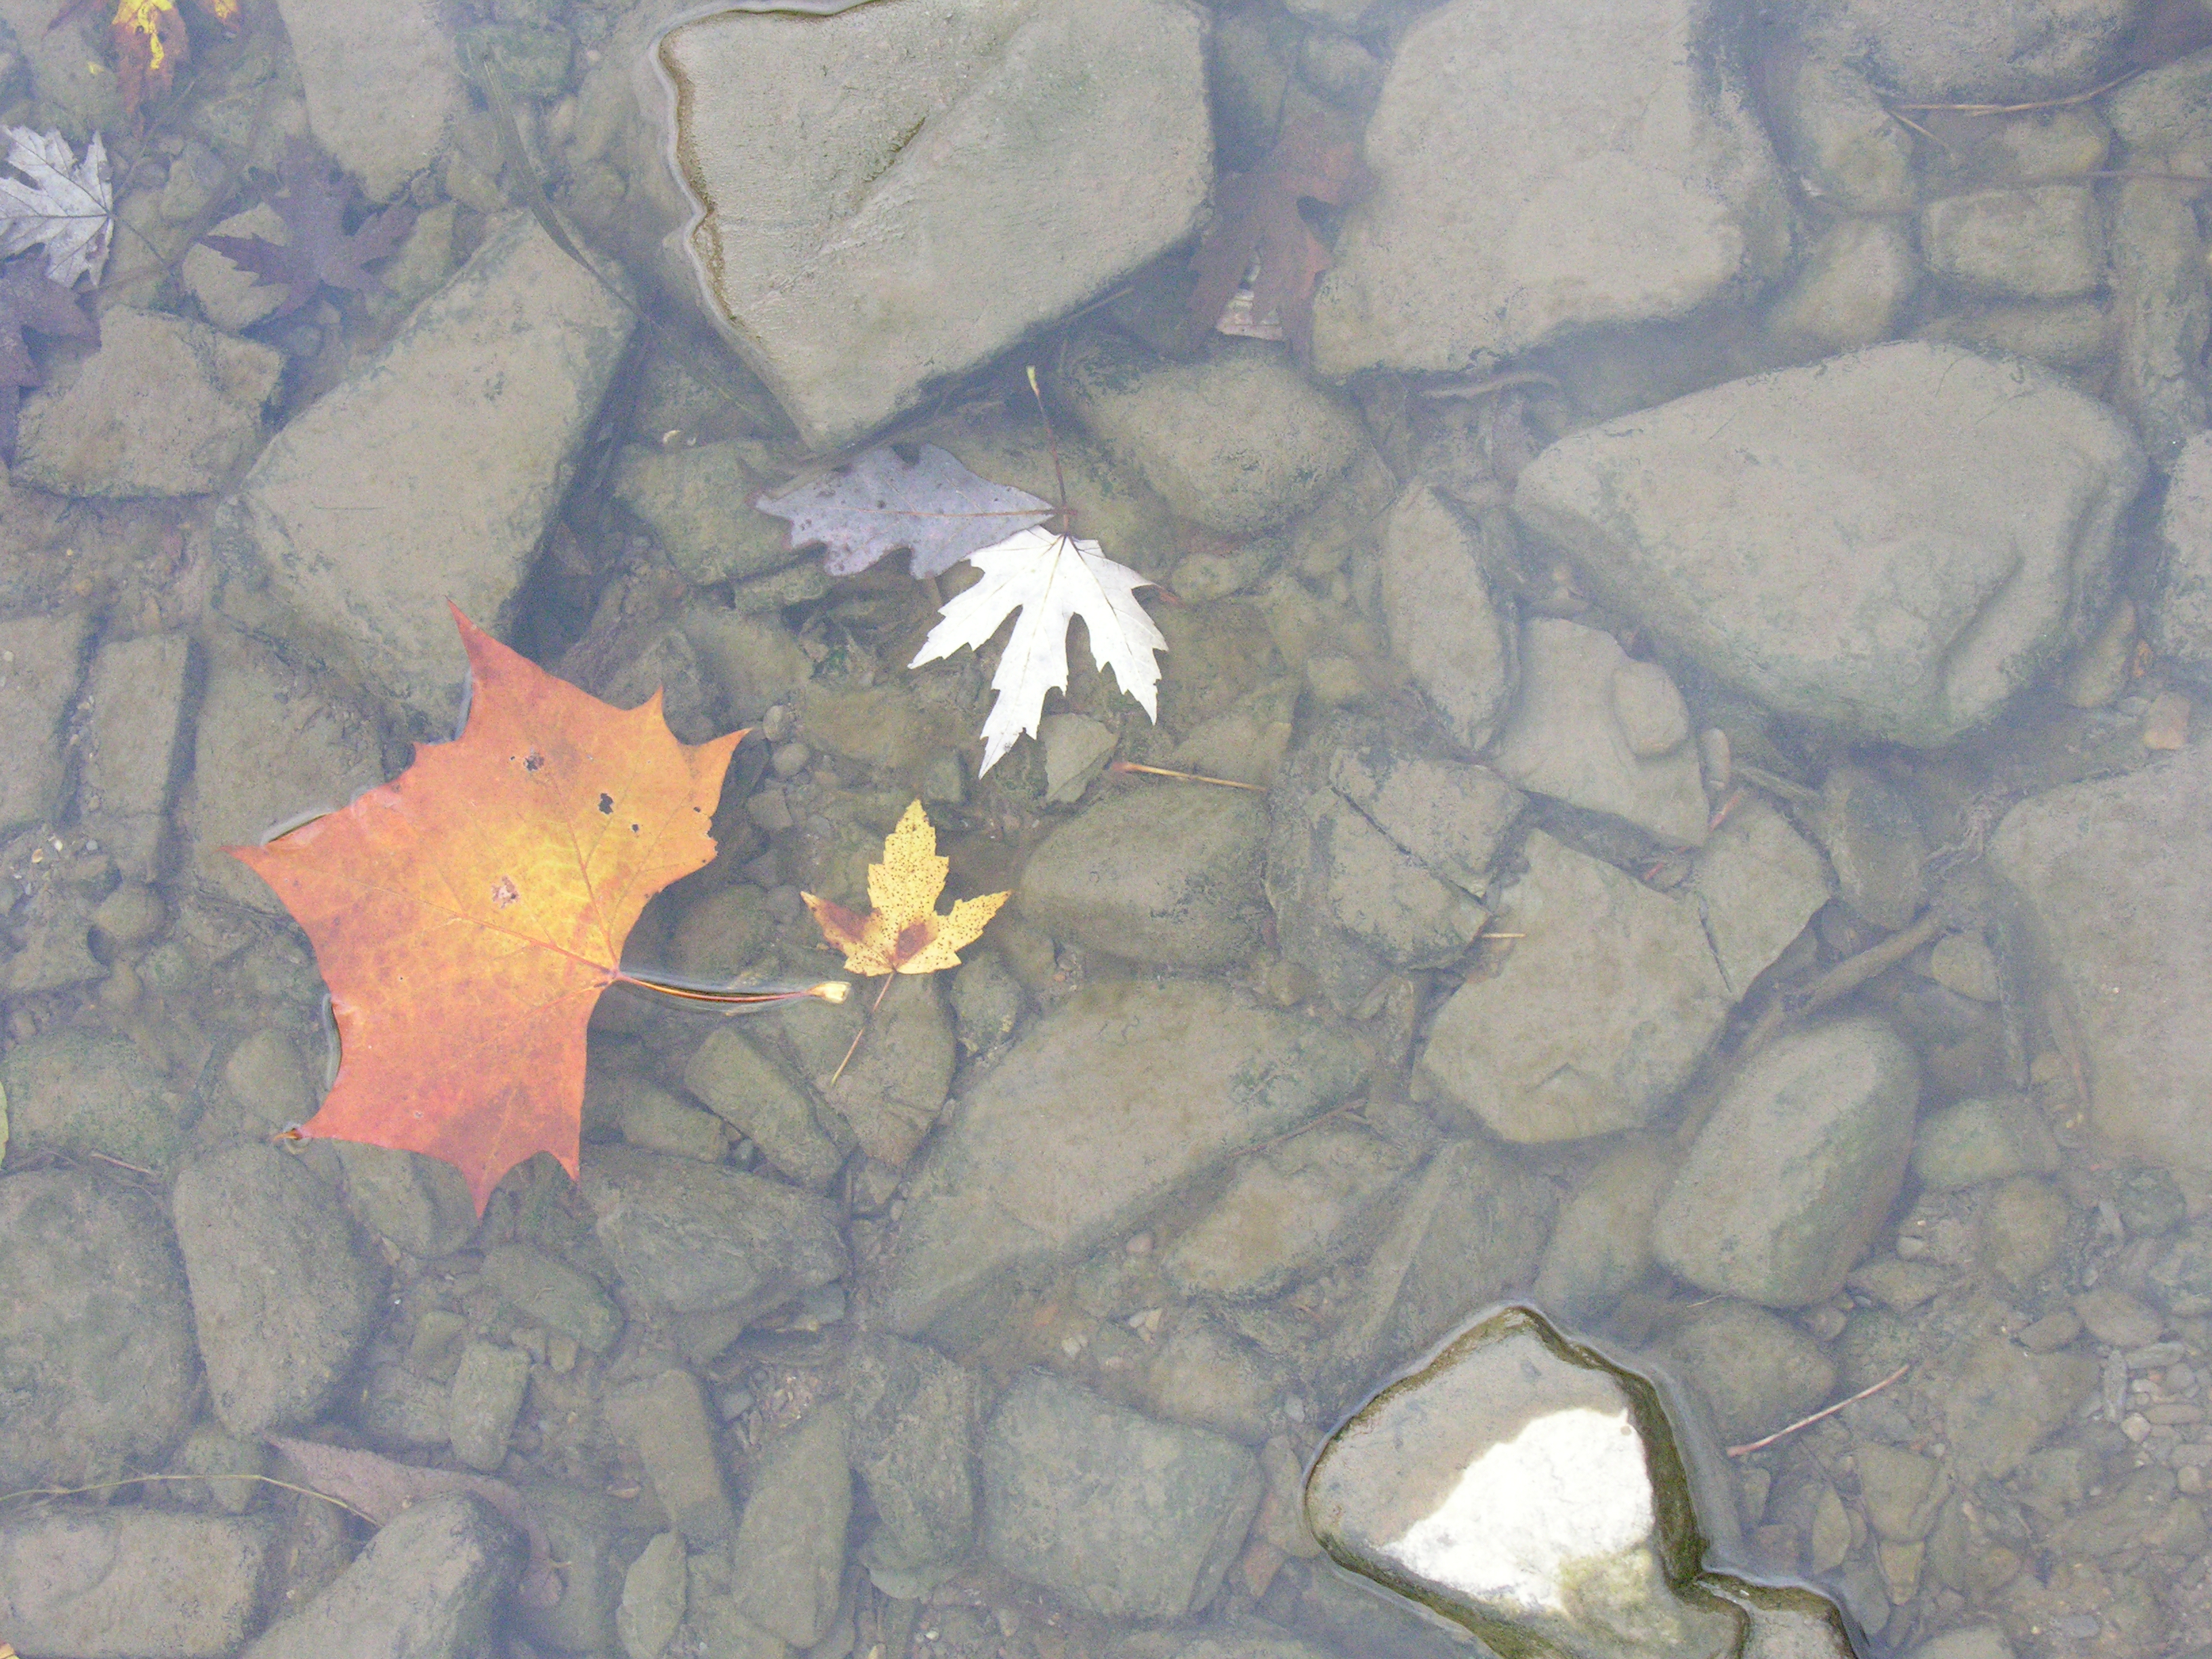 close up of clear mountain stream with floating fall leaves and rocks on bottom